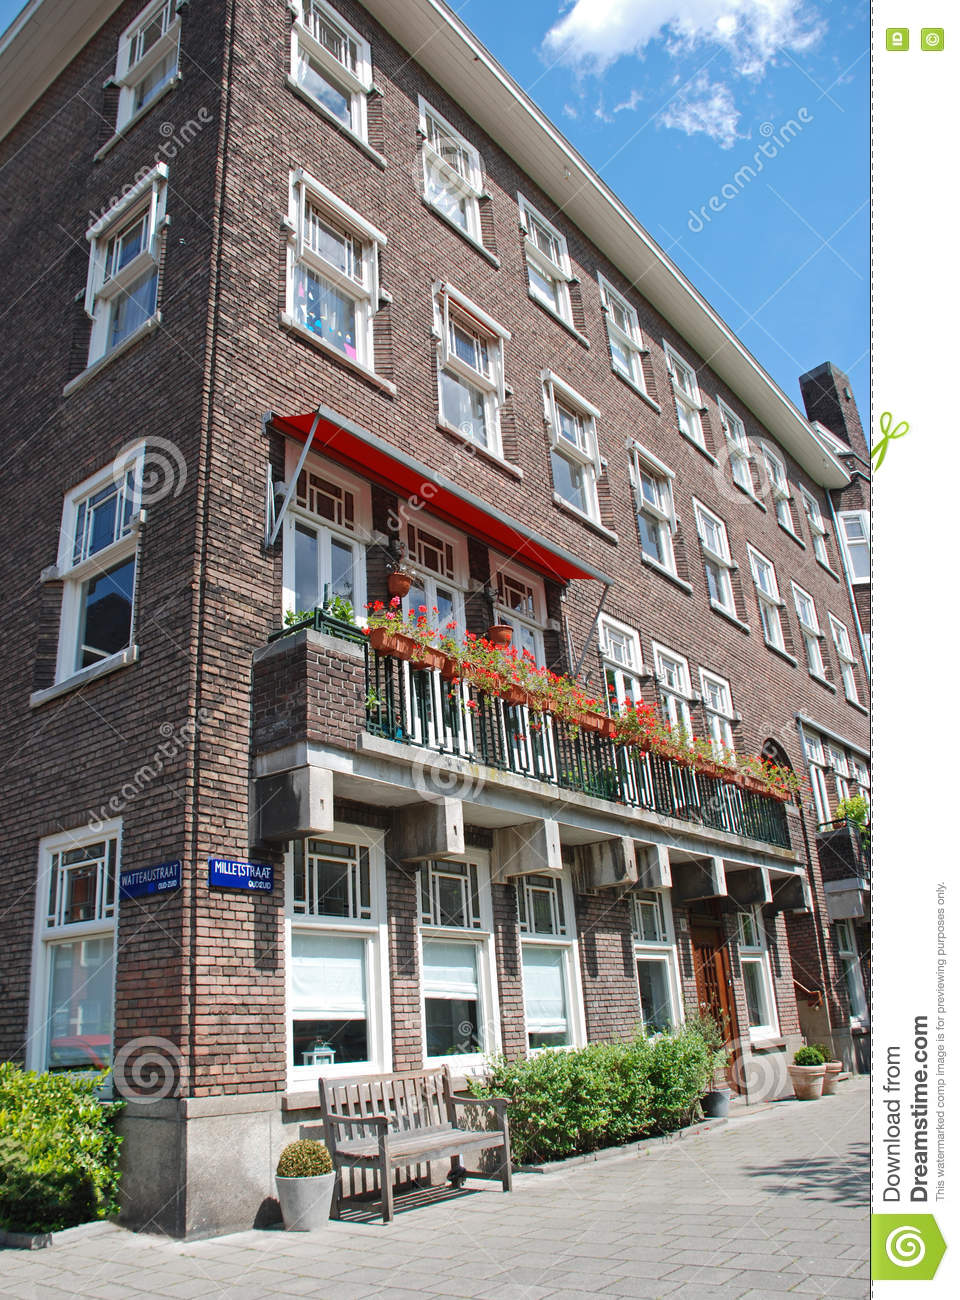 Apartment Block In Amsterdam Stock Image - Image of glass ...